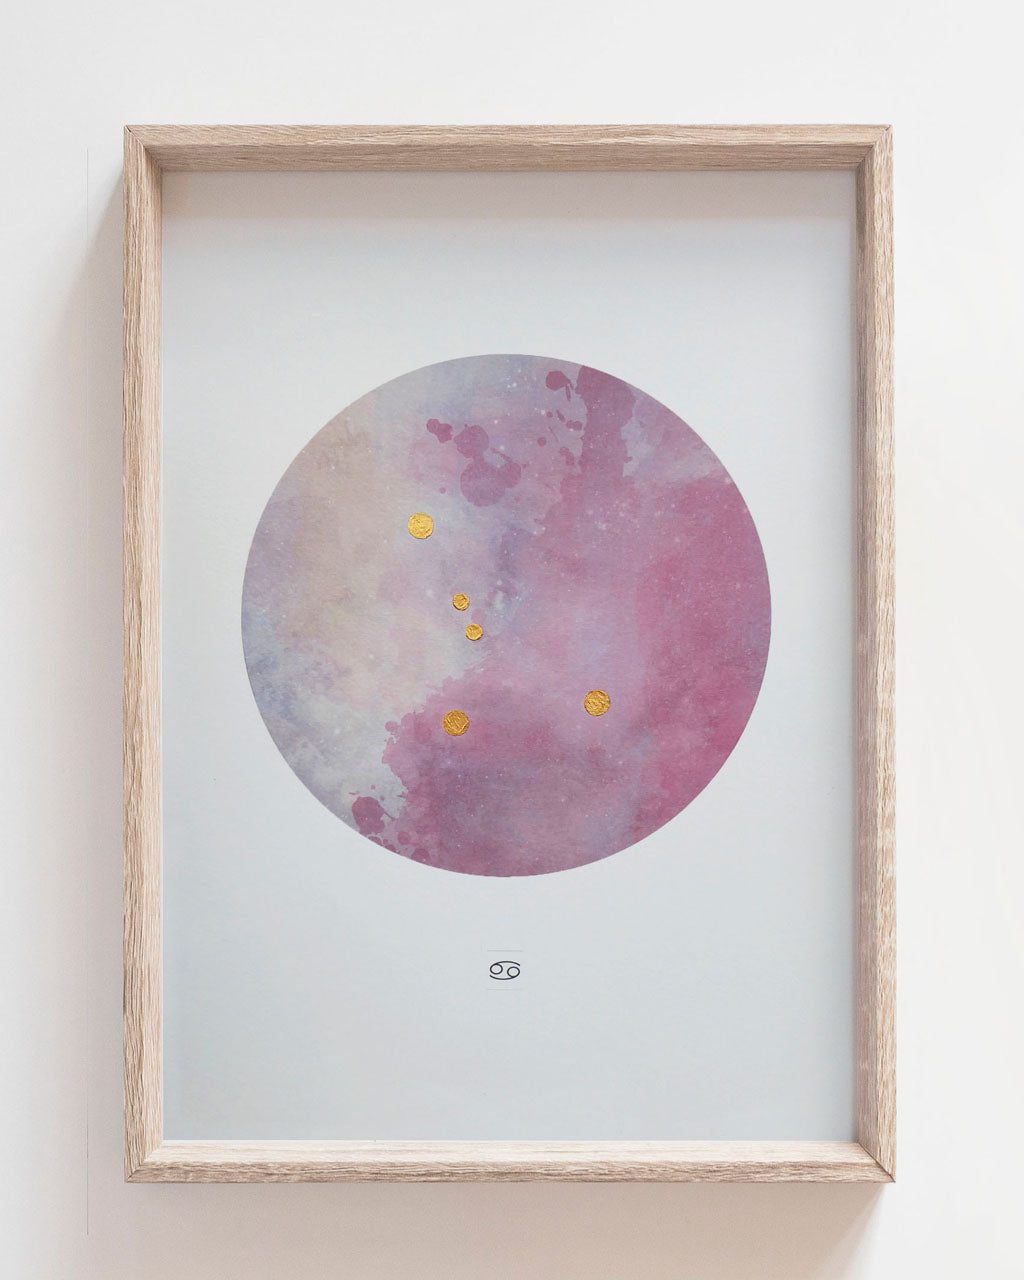 CANCER Zodiac Constellation Art Print with Hand-Painted Gold Stars